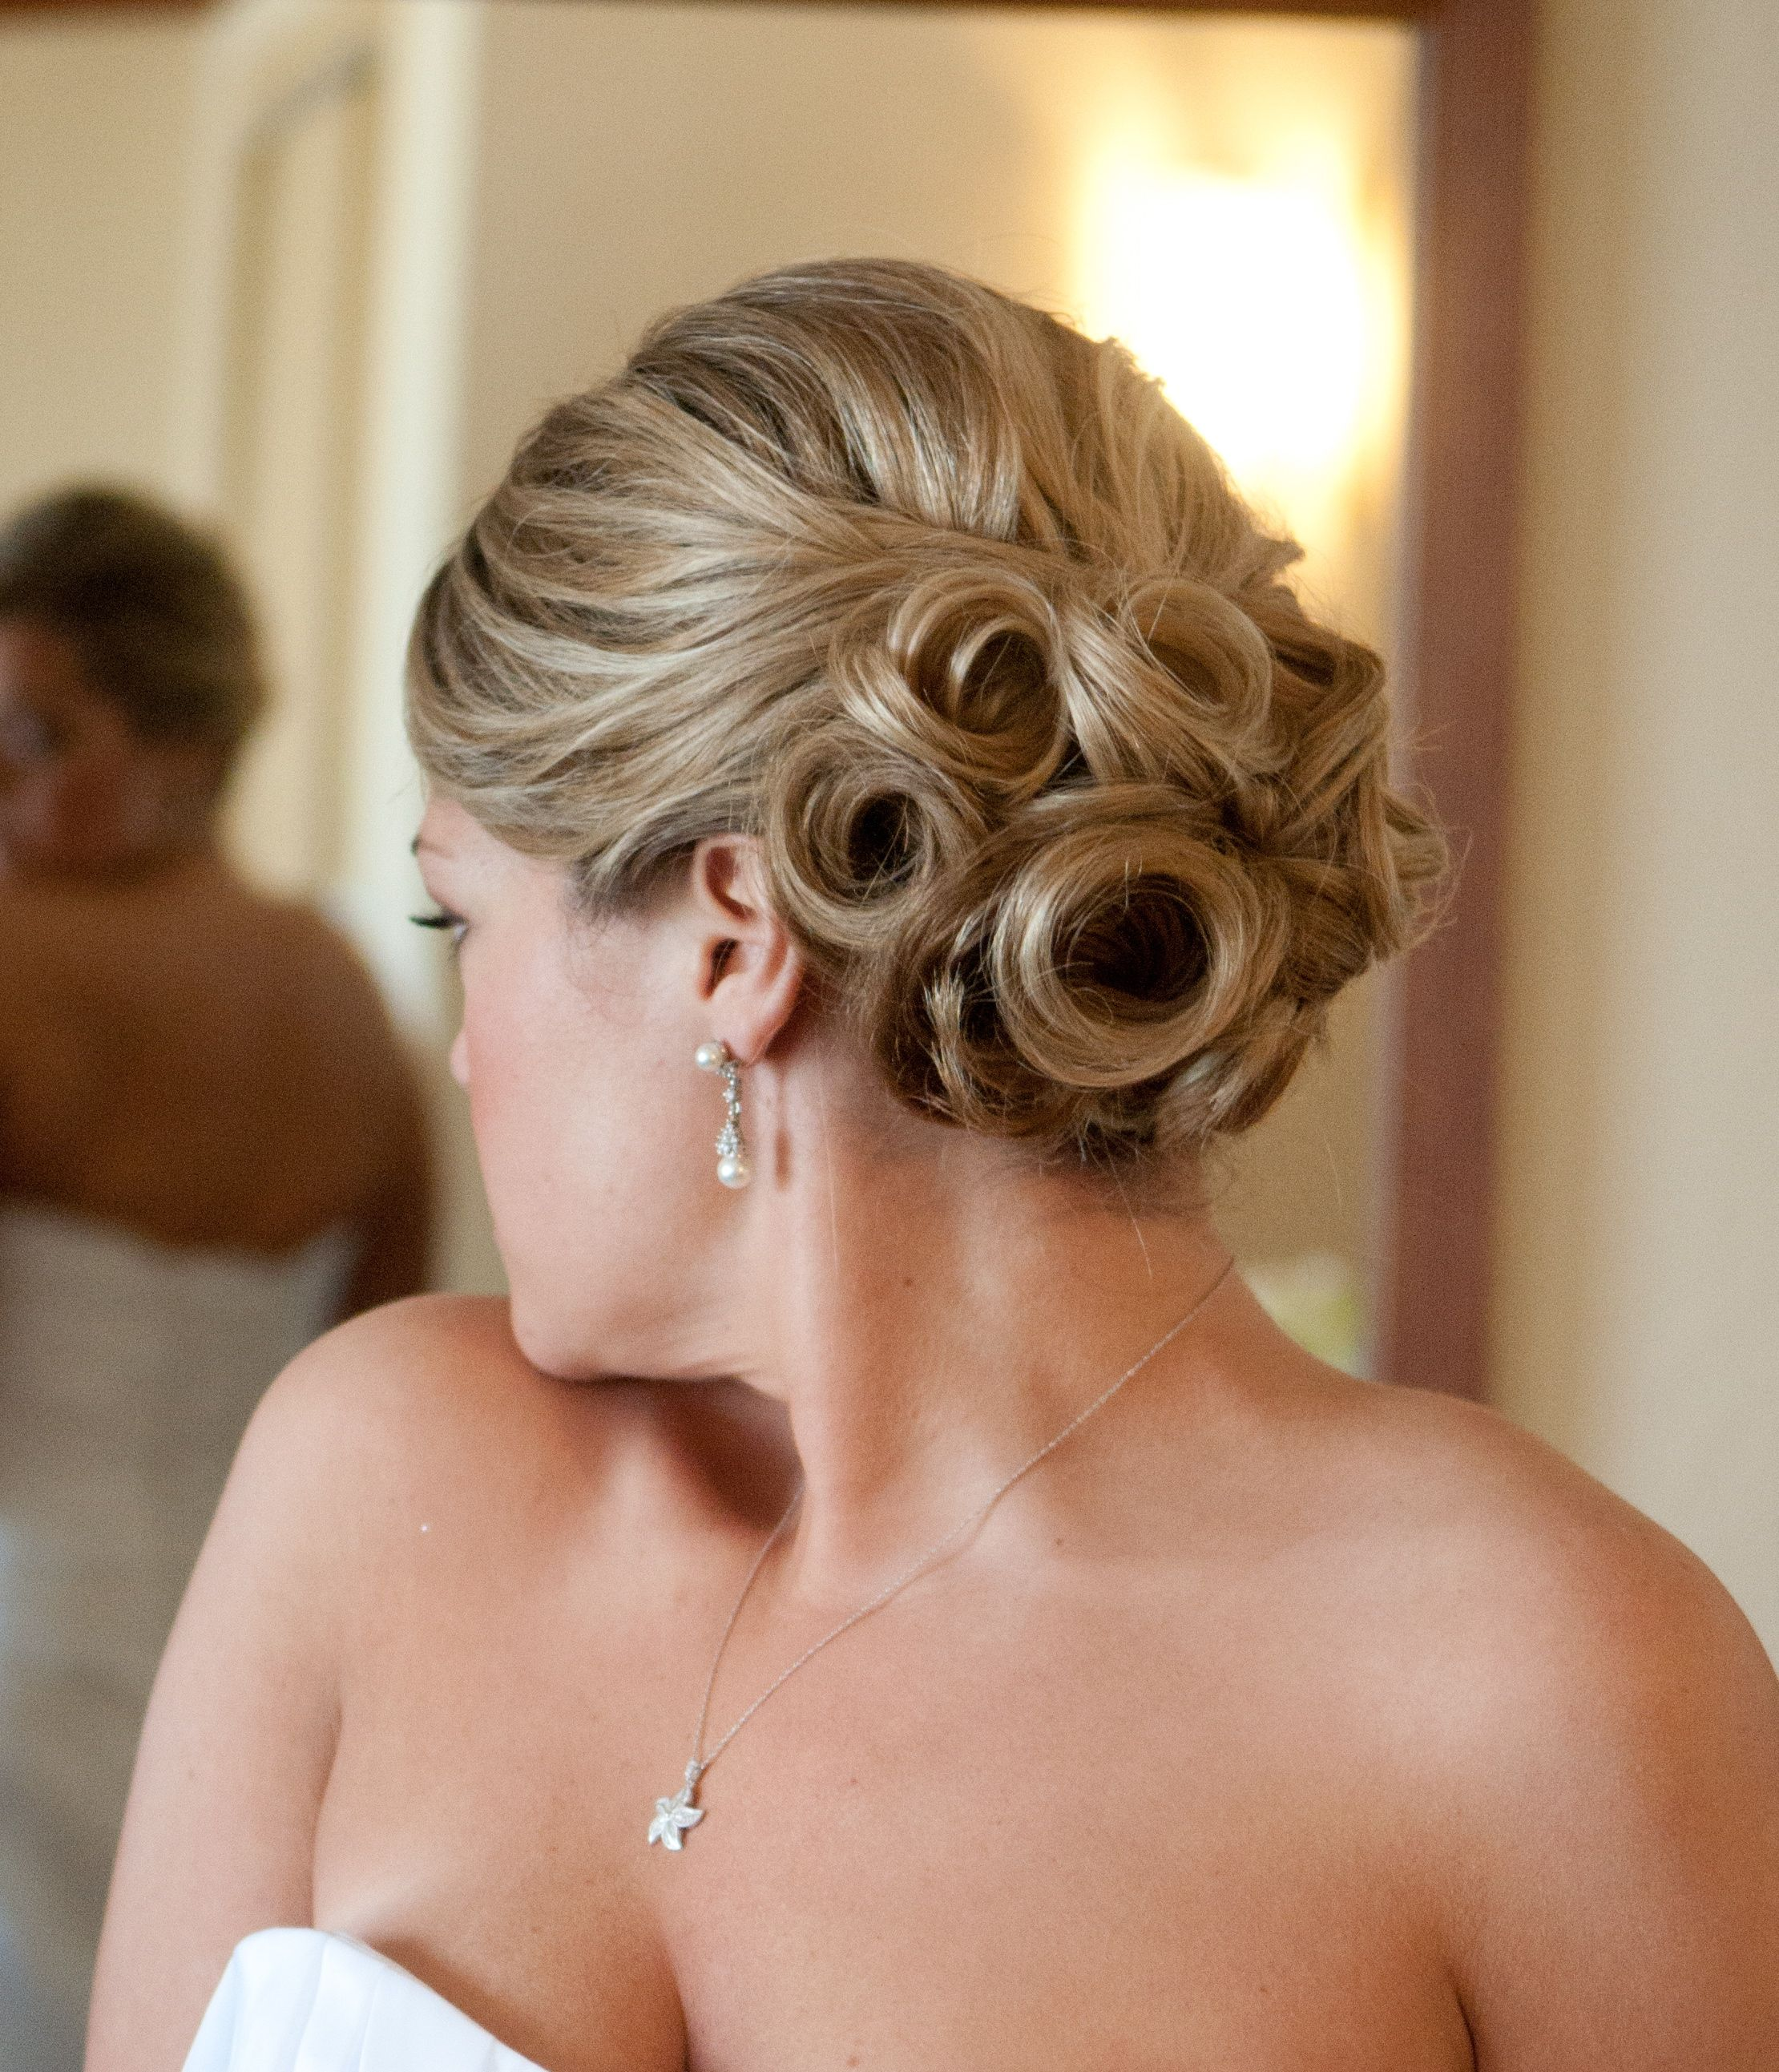 Rosettes Give Hair Styles Lots Of Definition And Design Perfect - Bun hairstyle definition